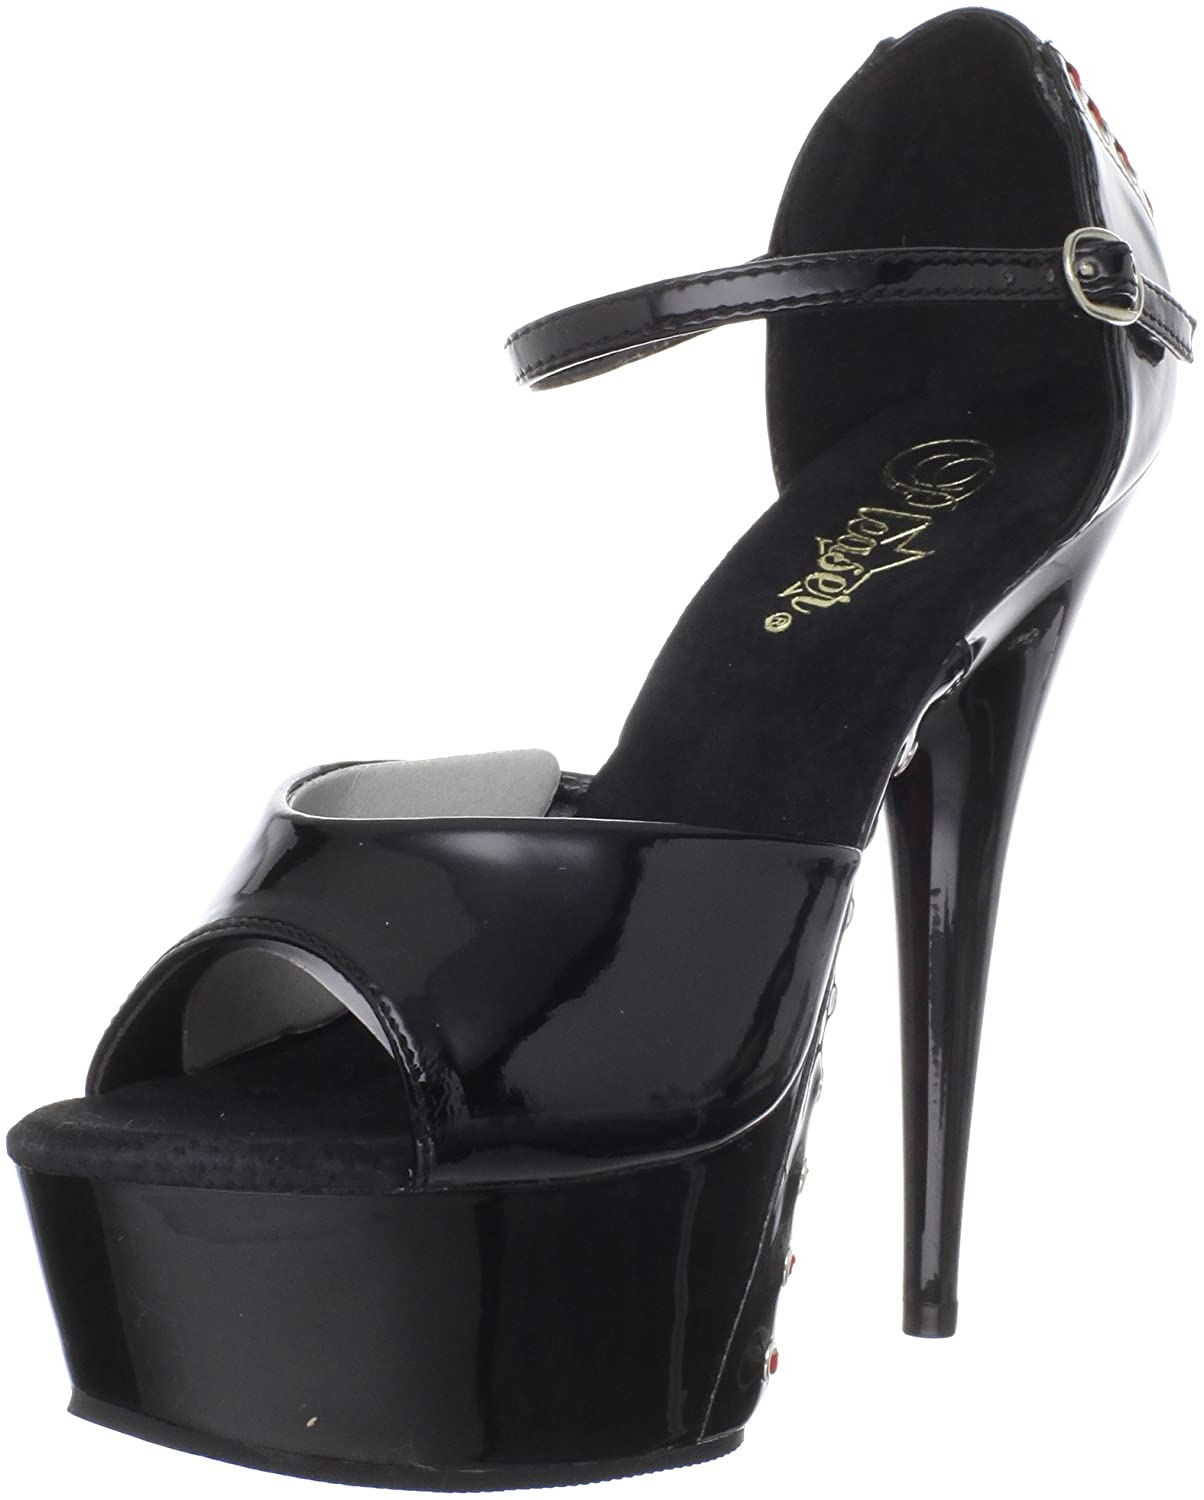 Pleaser Women's Delight-660FH/B/M Pump B0044D5OMS 6 B(M) US|Black Patent/Black